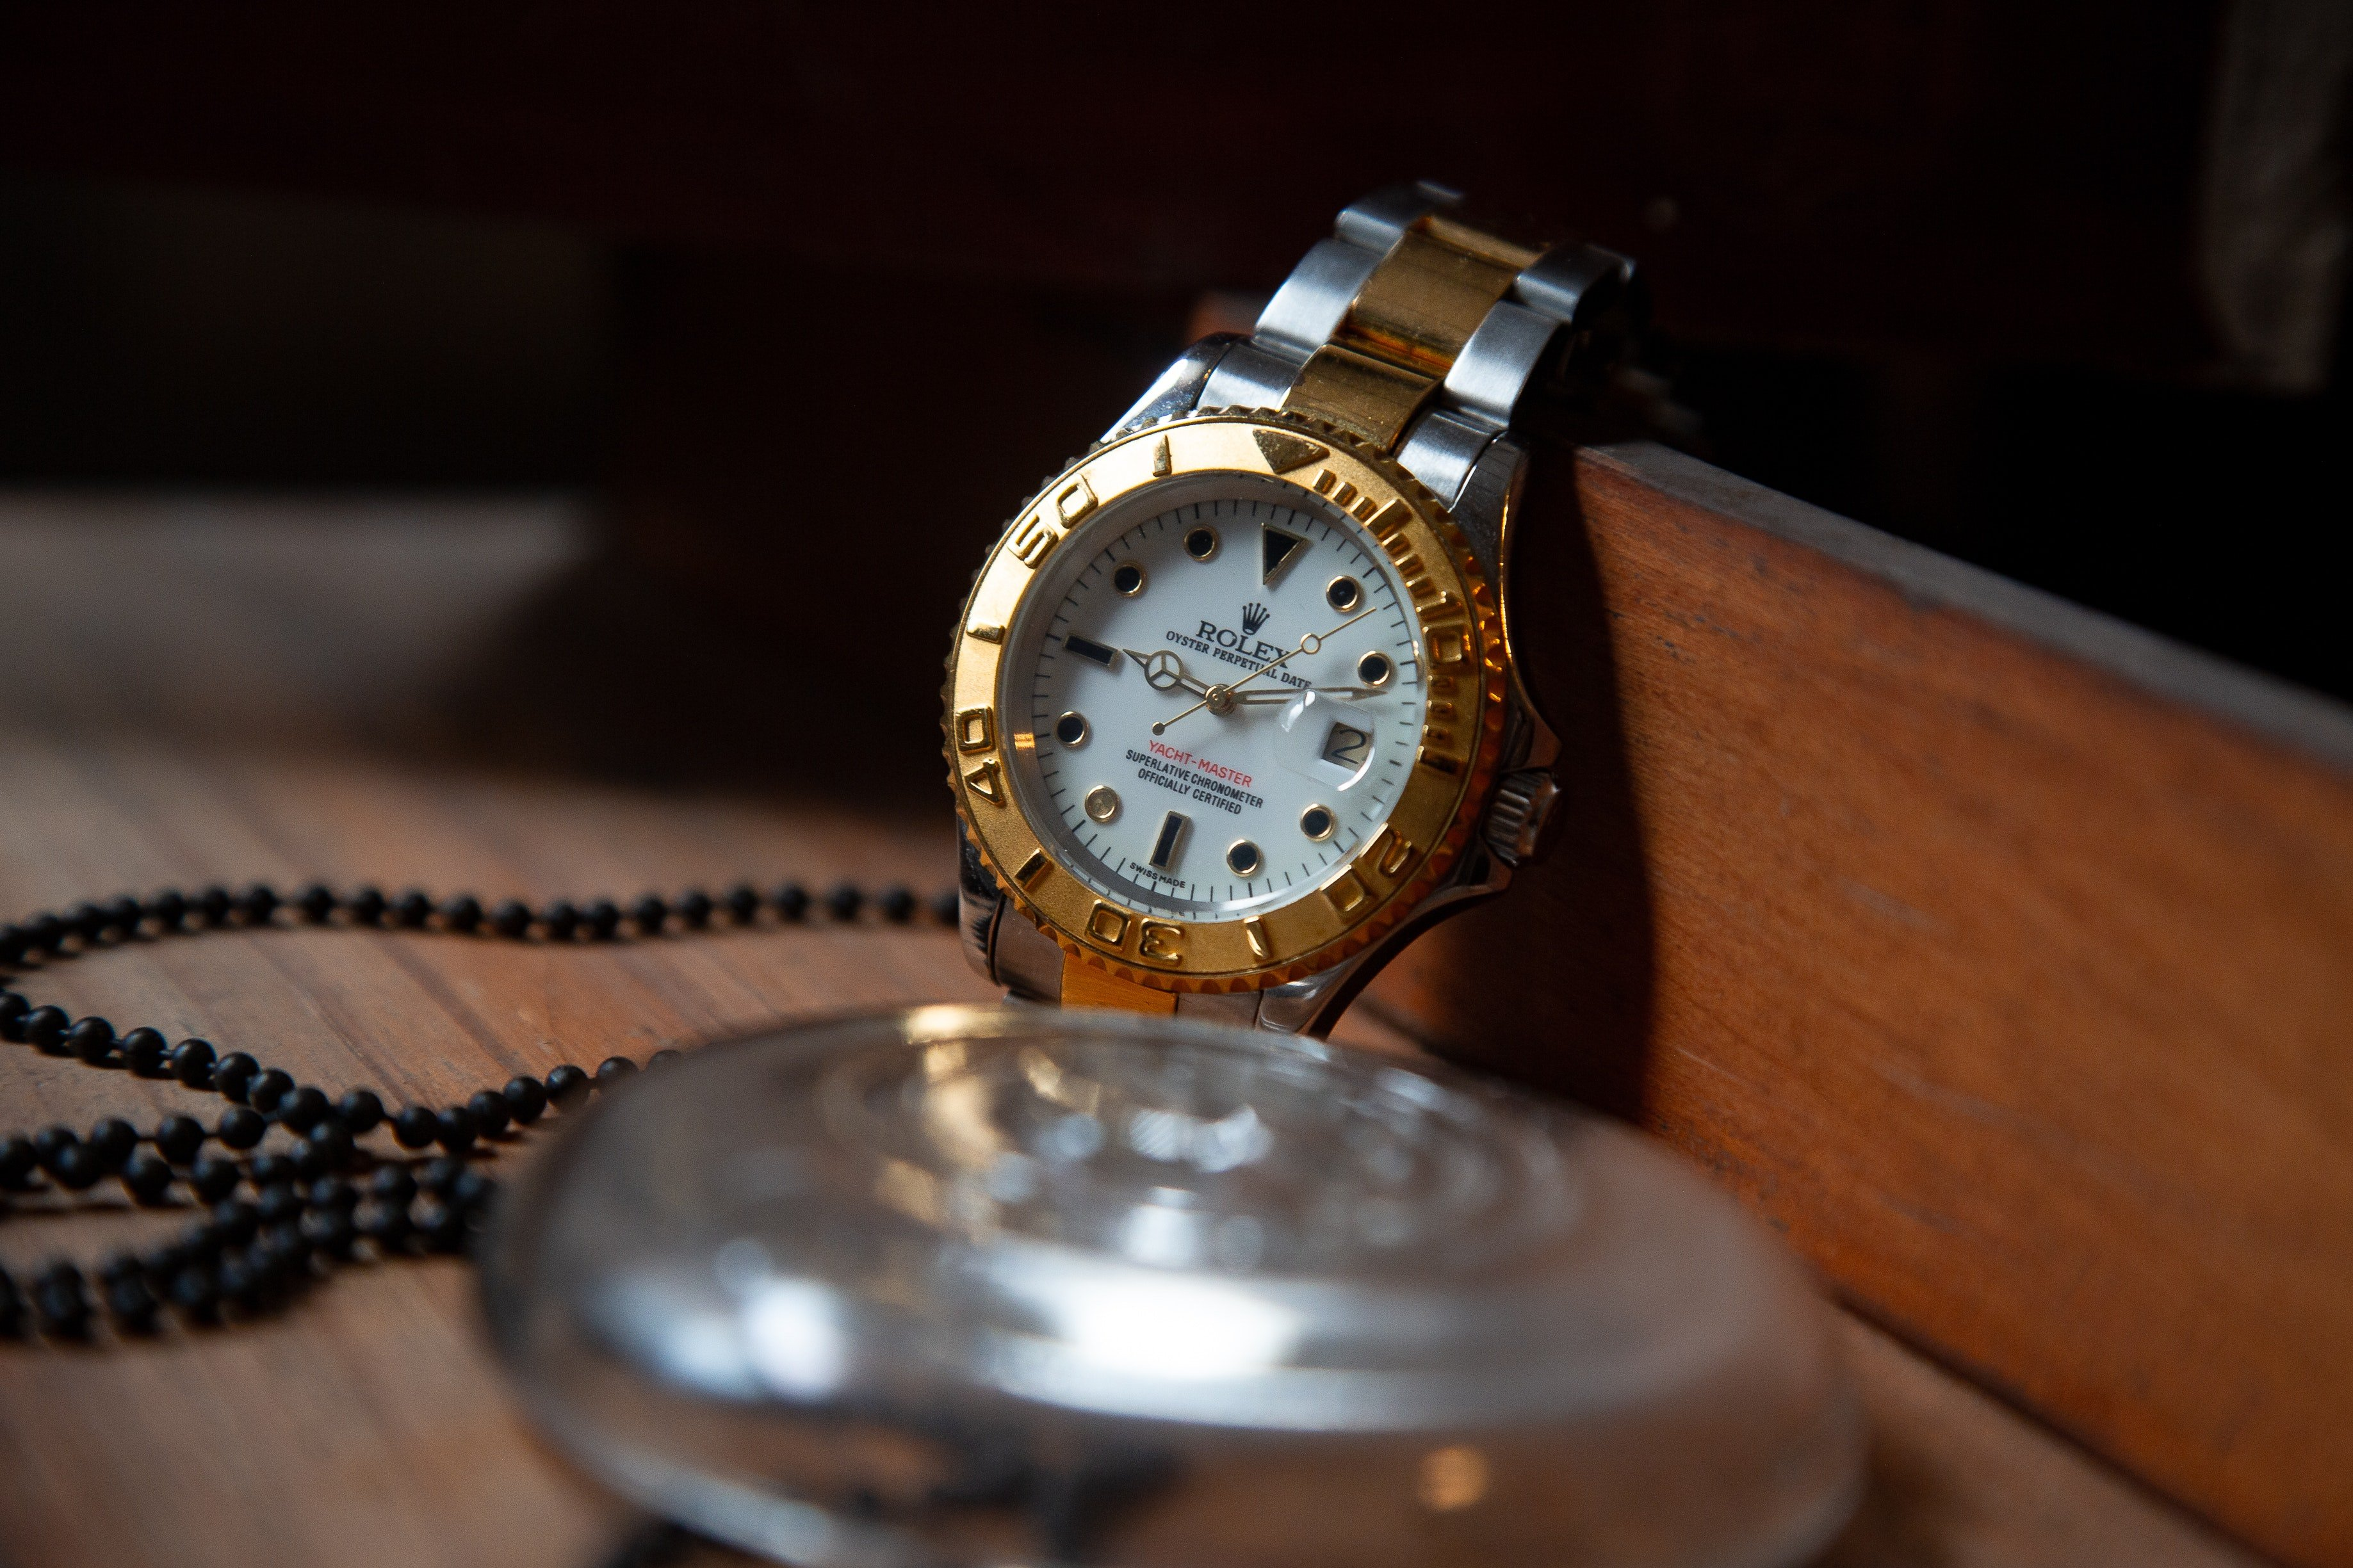 A vintage Rolex was nicely seated inside the wooden box   Source: Pexels